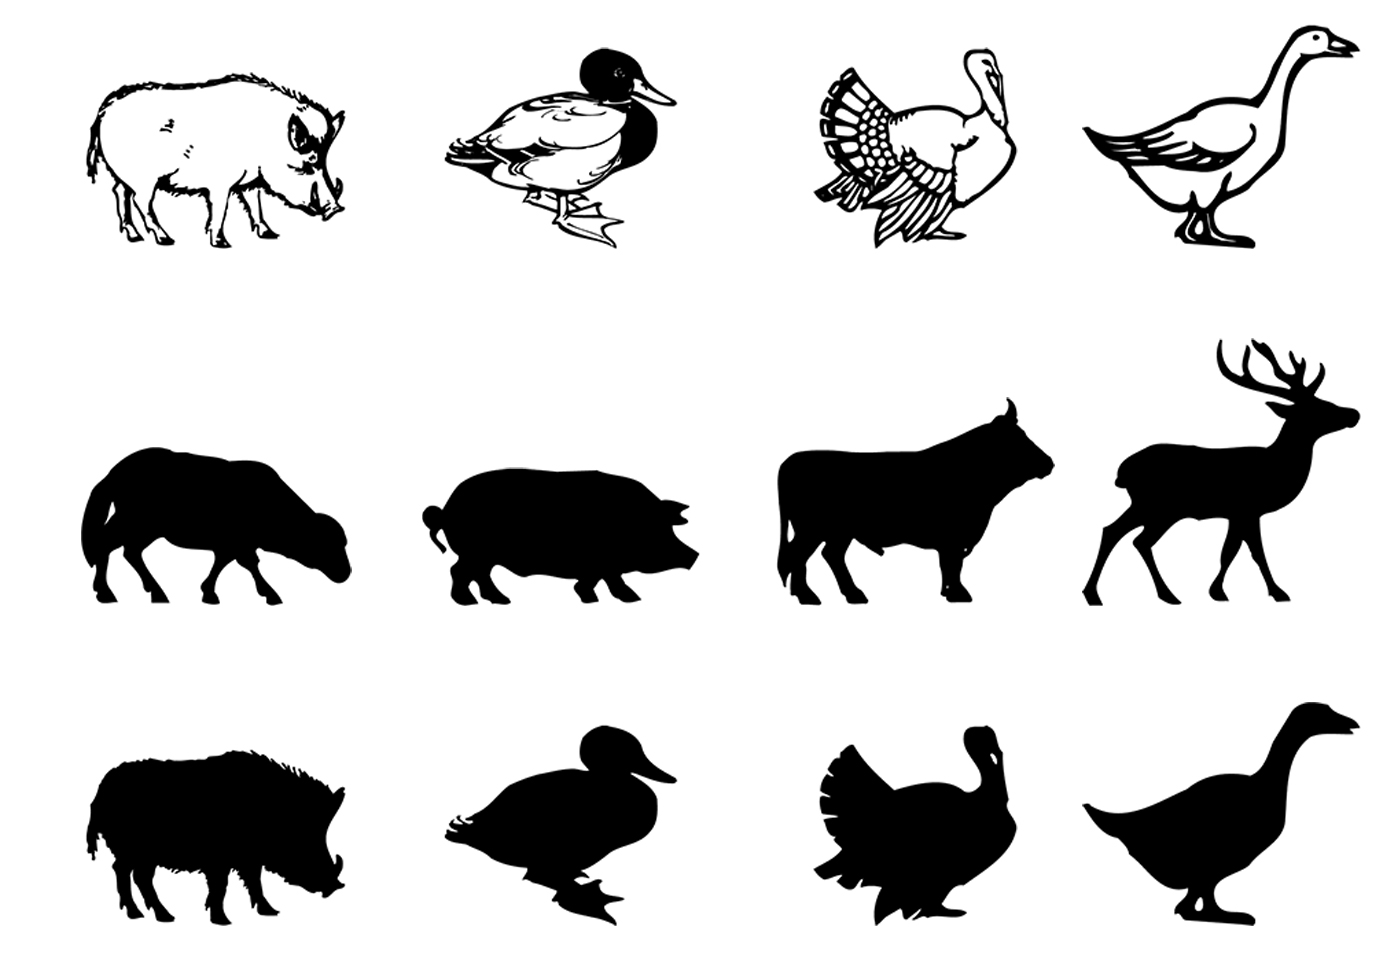 coloring face in photoshop farm animal brushes silhouettes pack free photoshop in photoshop coloring face